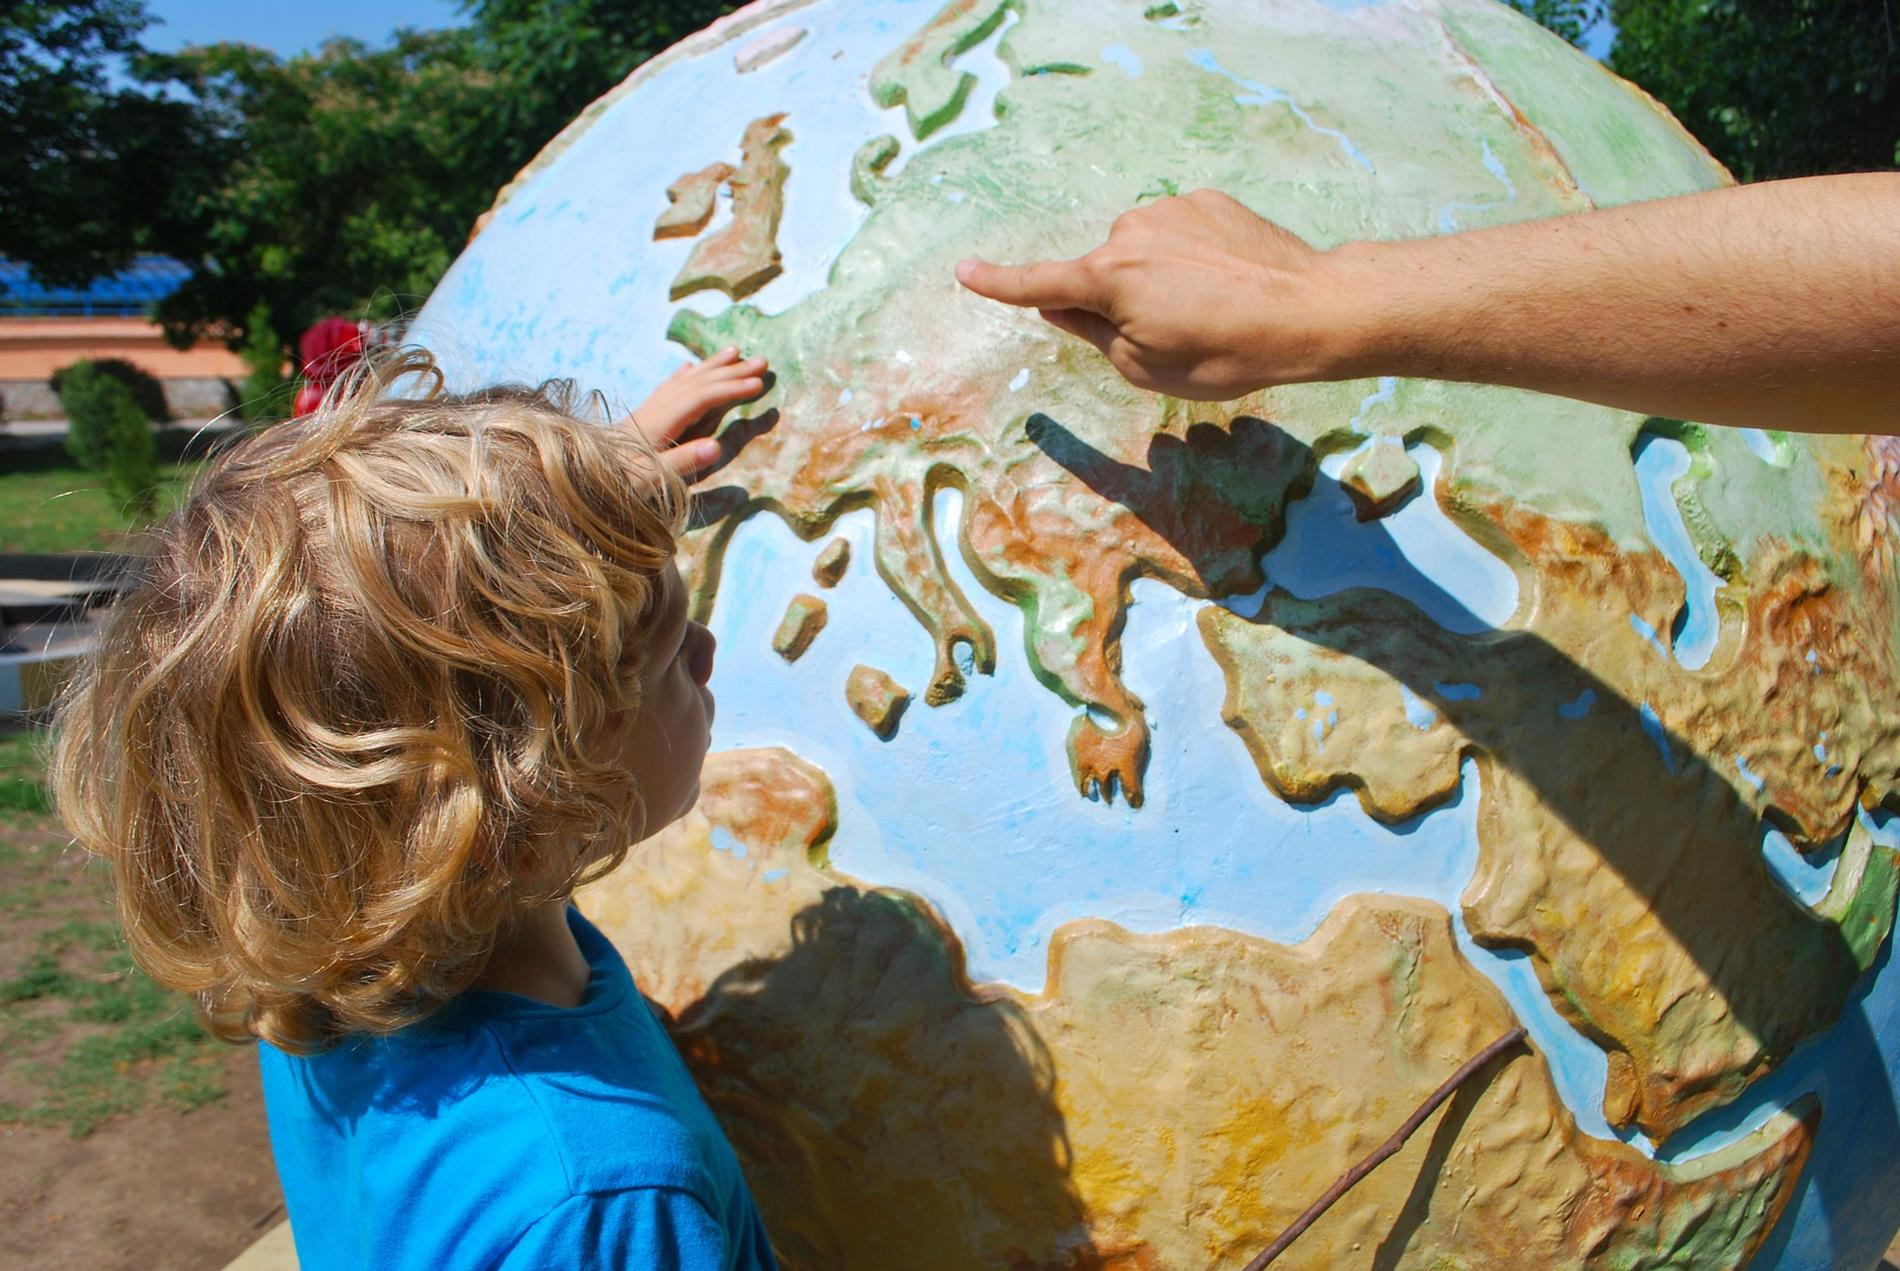 small child touching large globe with adult hand pointing finger at globe